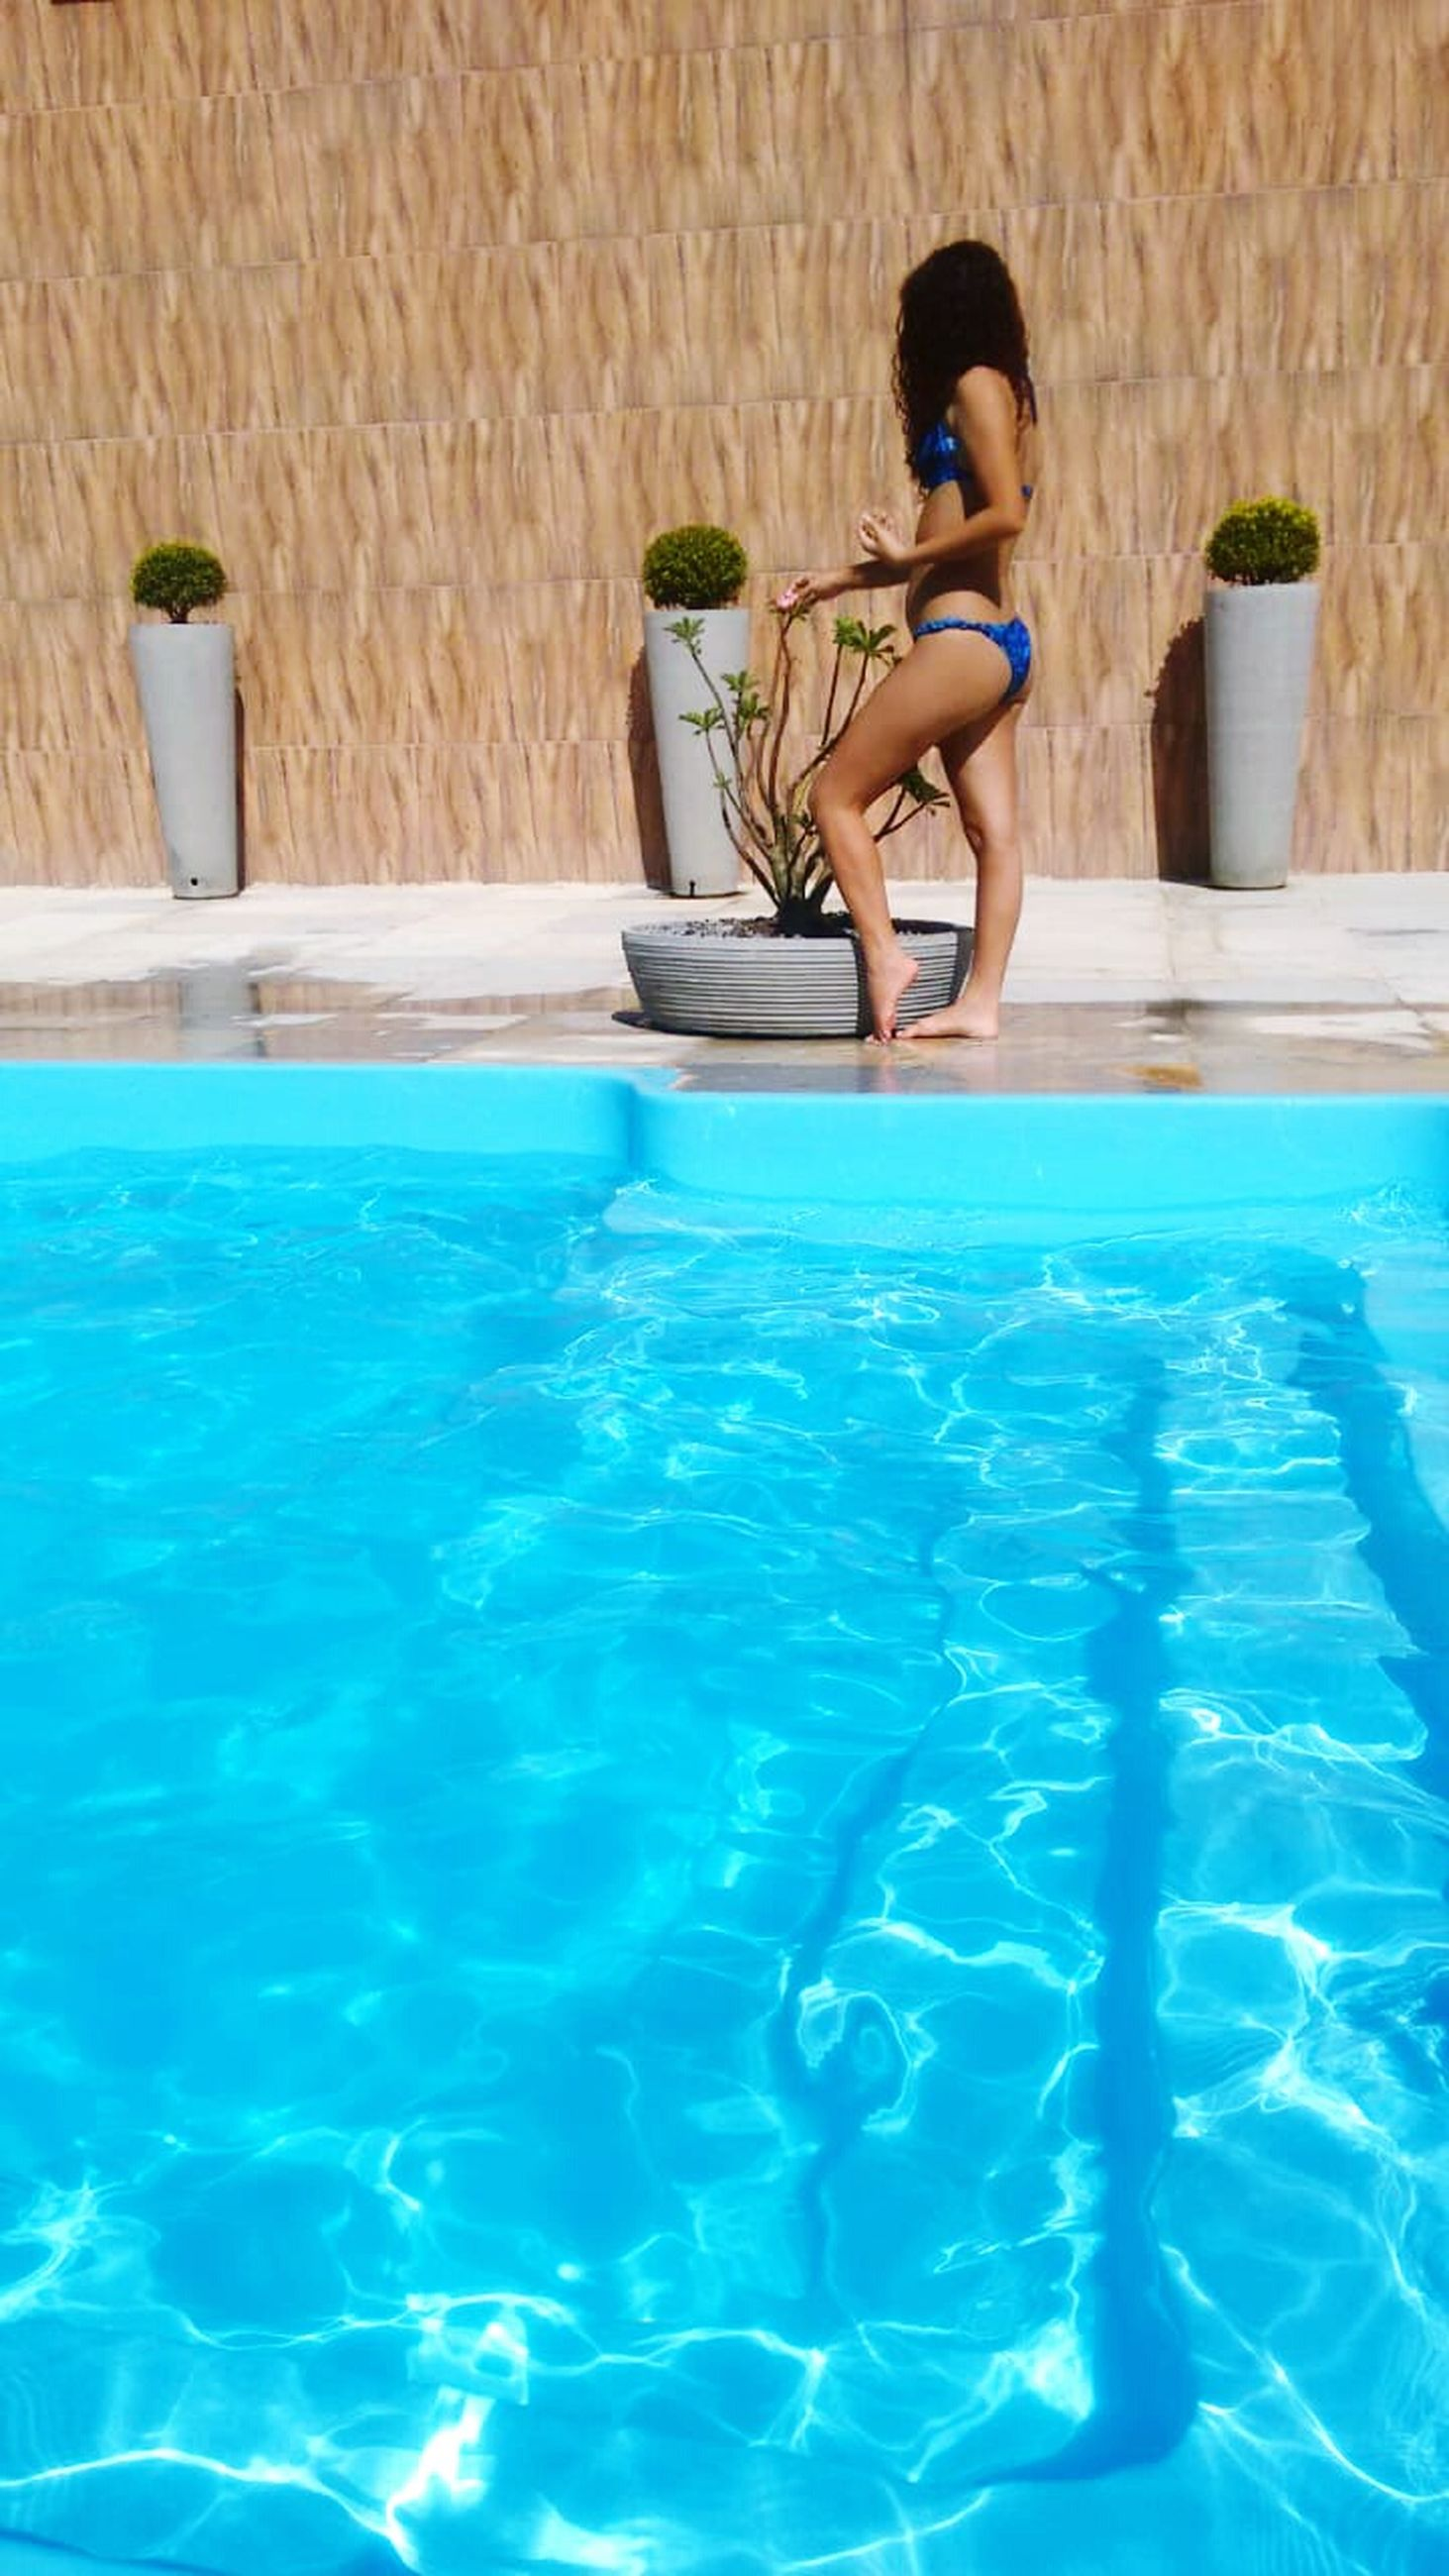 pool, swimming pool, one person, water, leisure activity, nature, sitting, full length, lifestyles, day, real people, waterfront, relaxation, women, adult, summer, young adult, blue, outdoors, turquoise colored, hairstyle